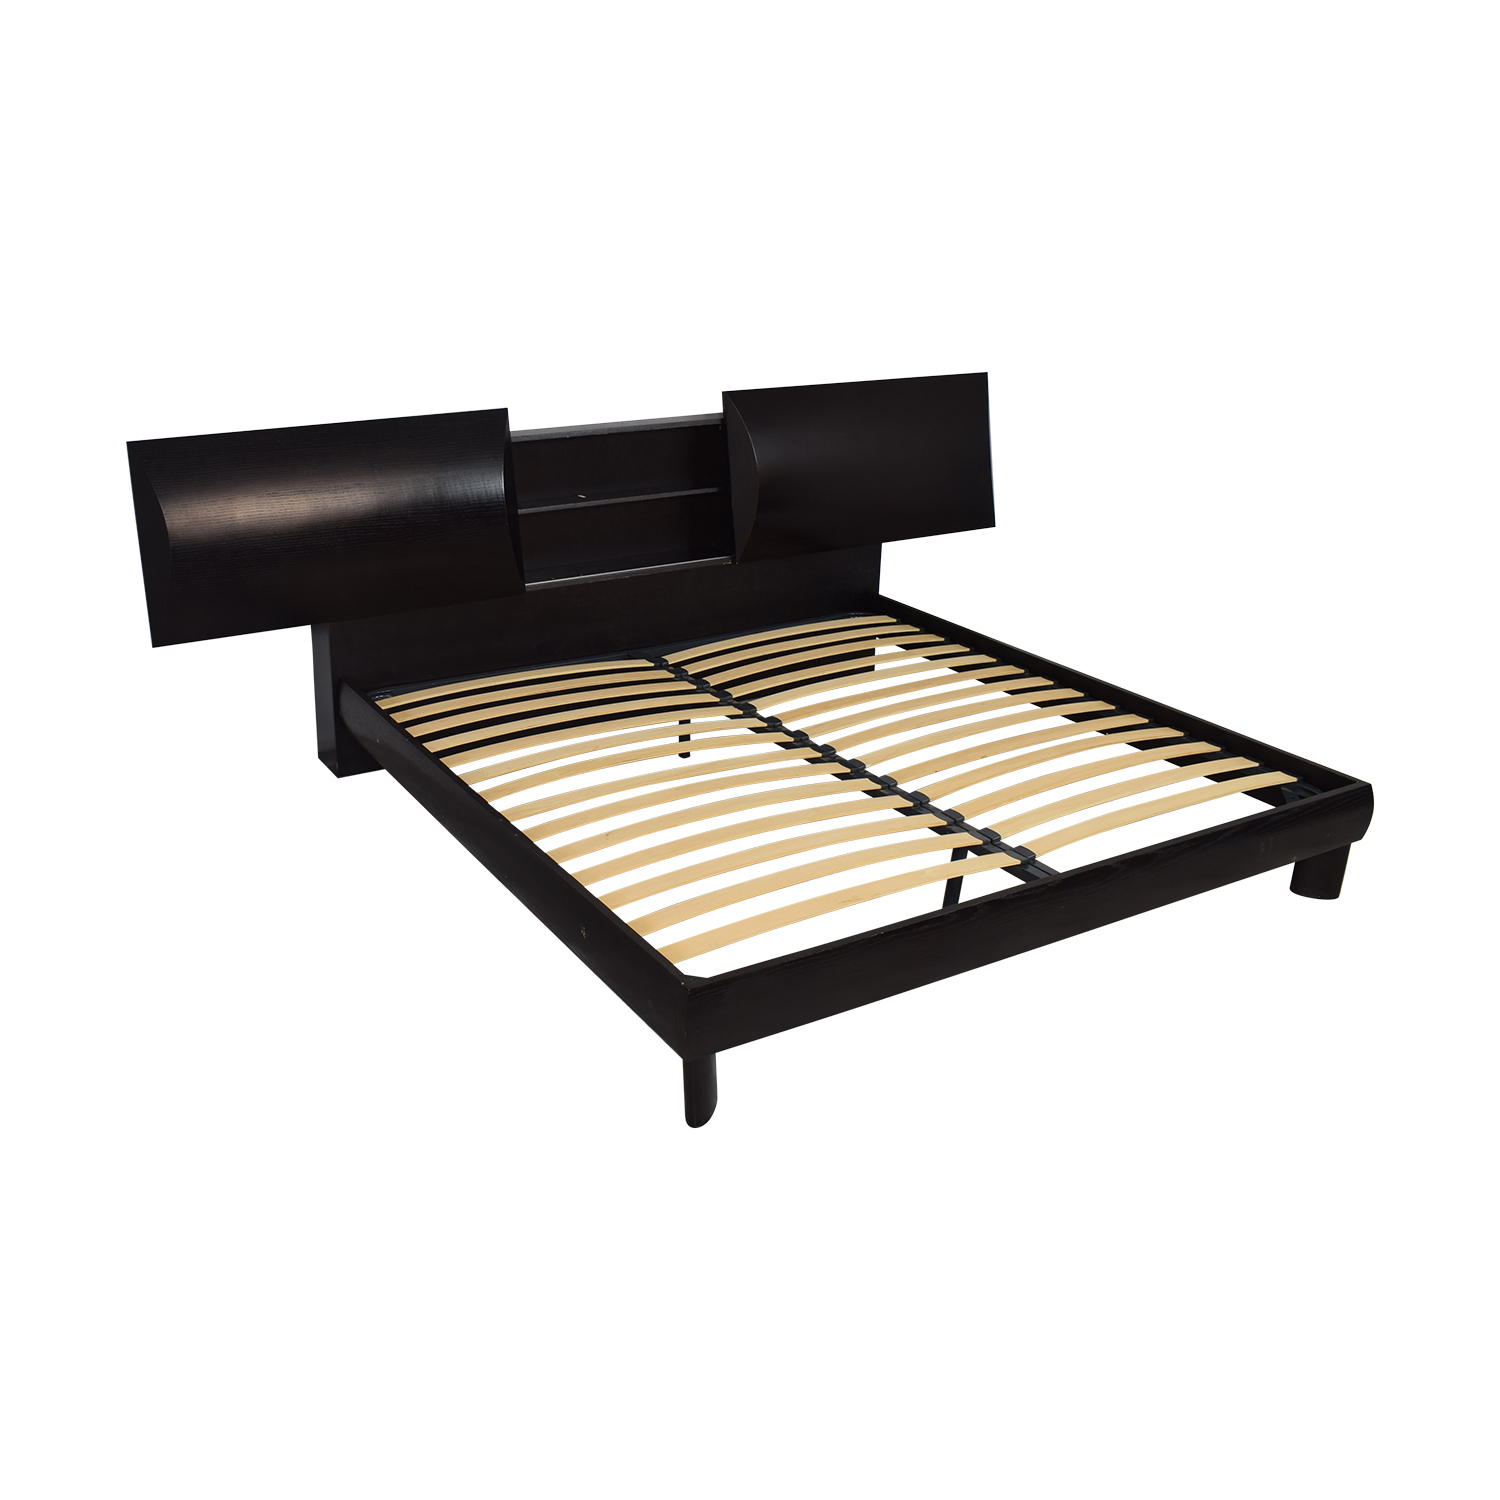 King Bed with Storage Headboard price